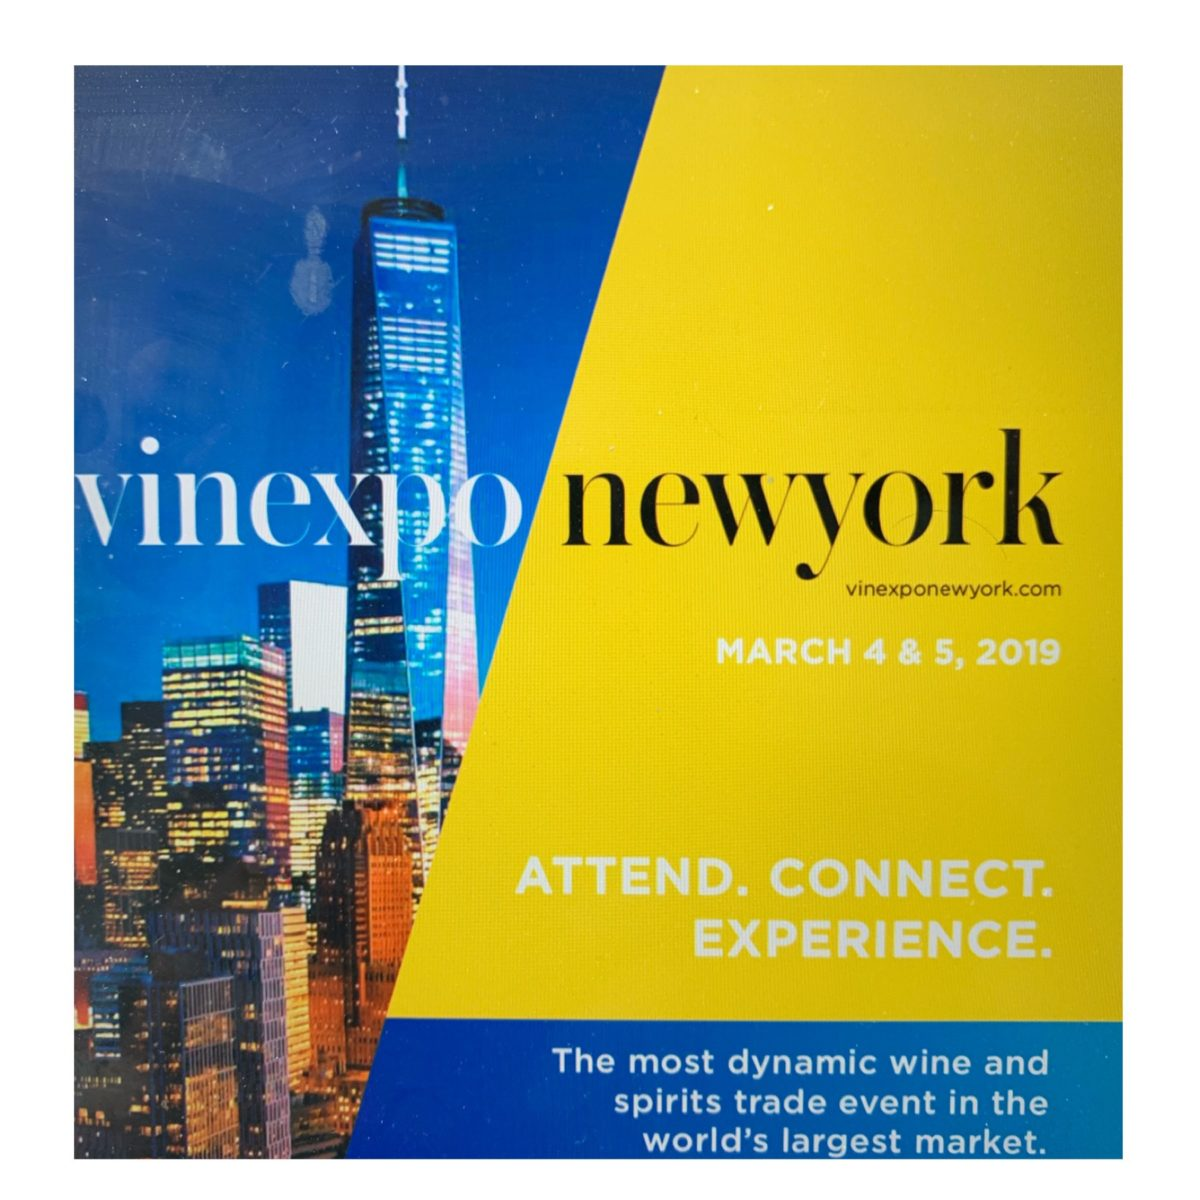 Vinexpo New York Launches 2020 Brochure